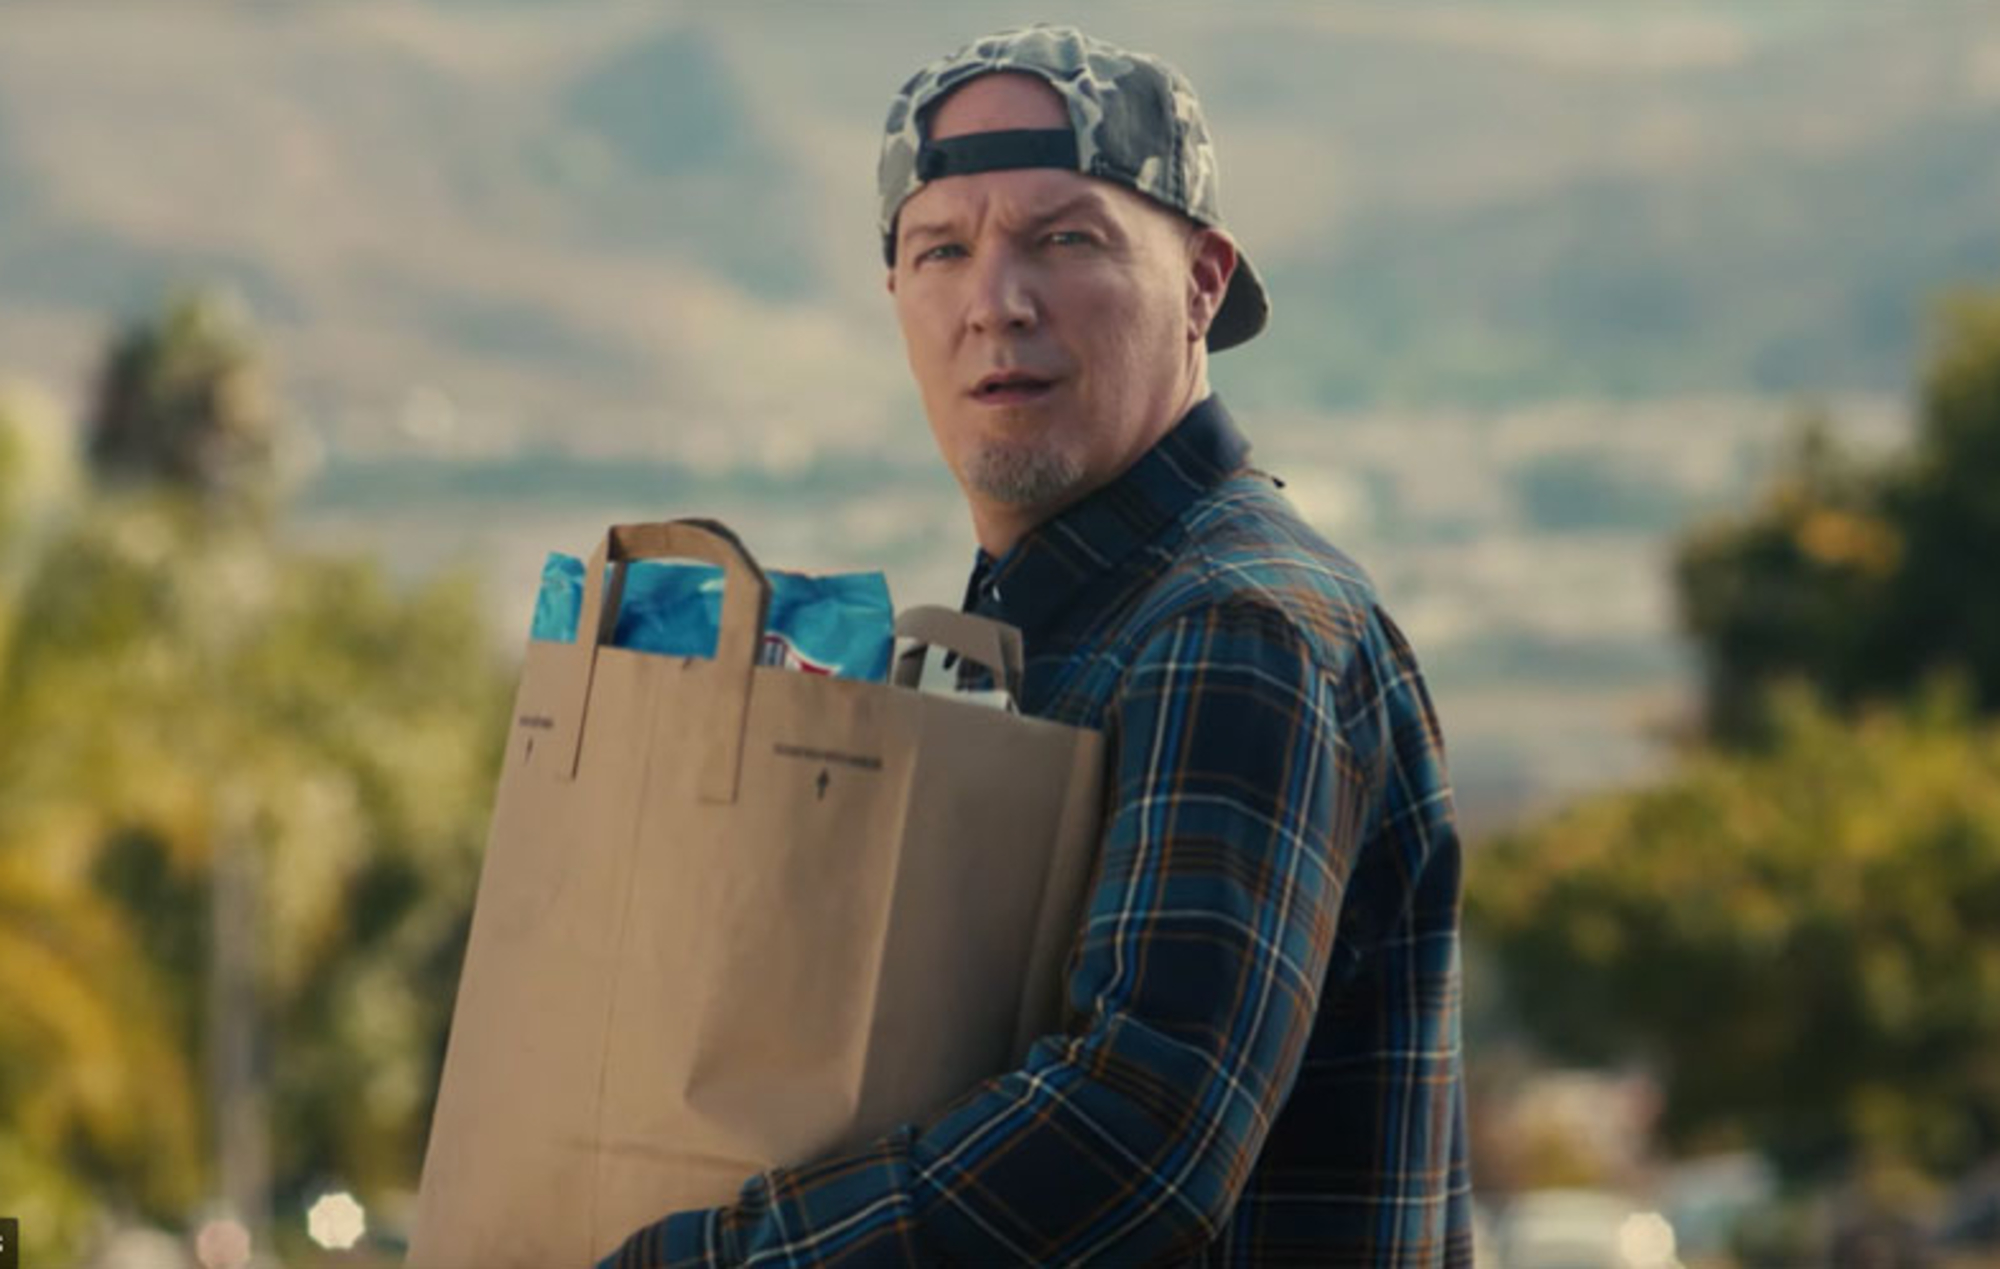 fred durst in new commercial that pokes at limp